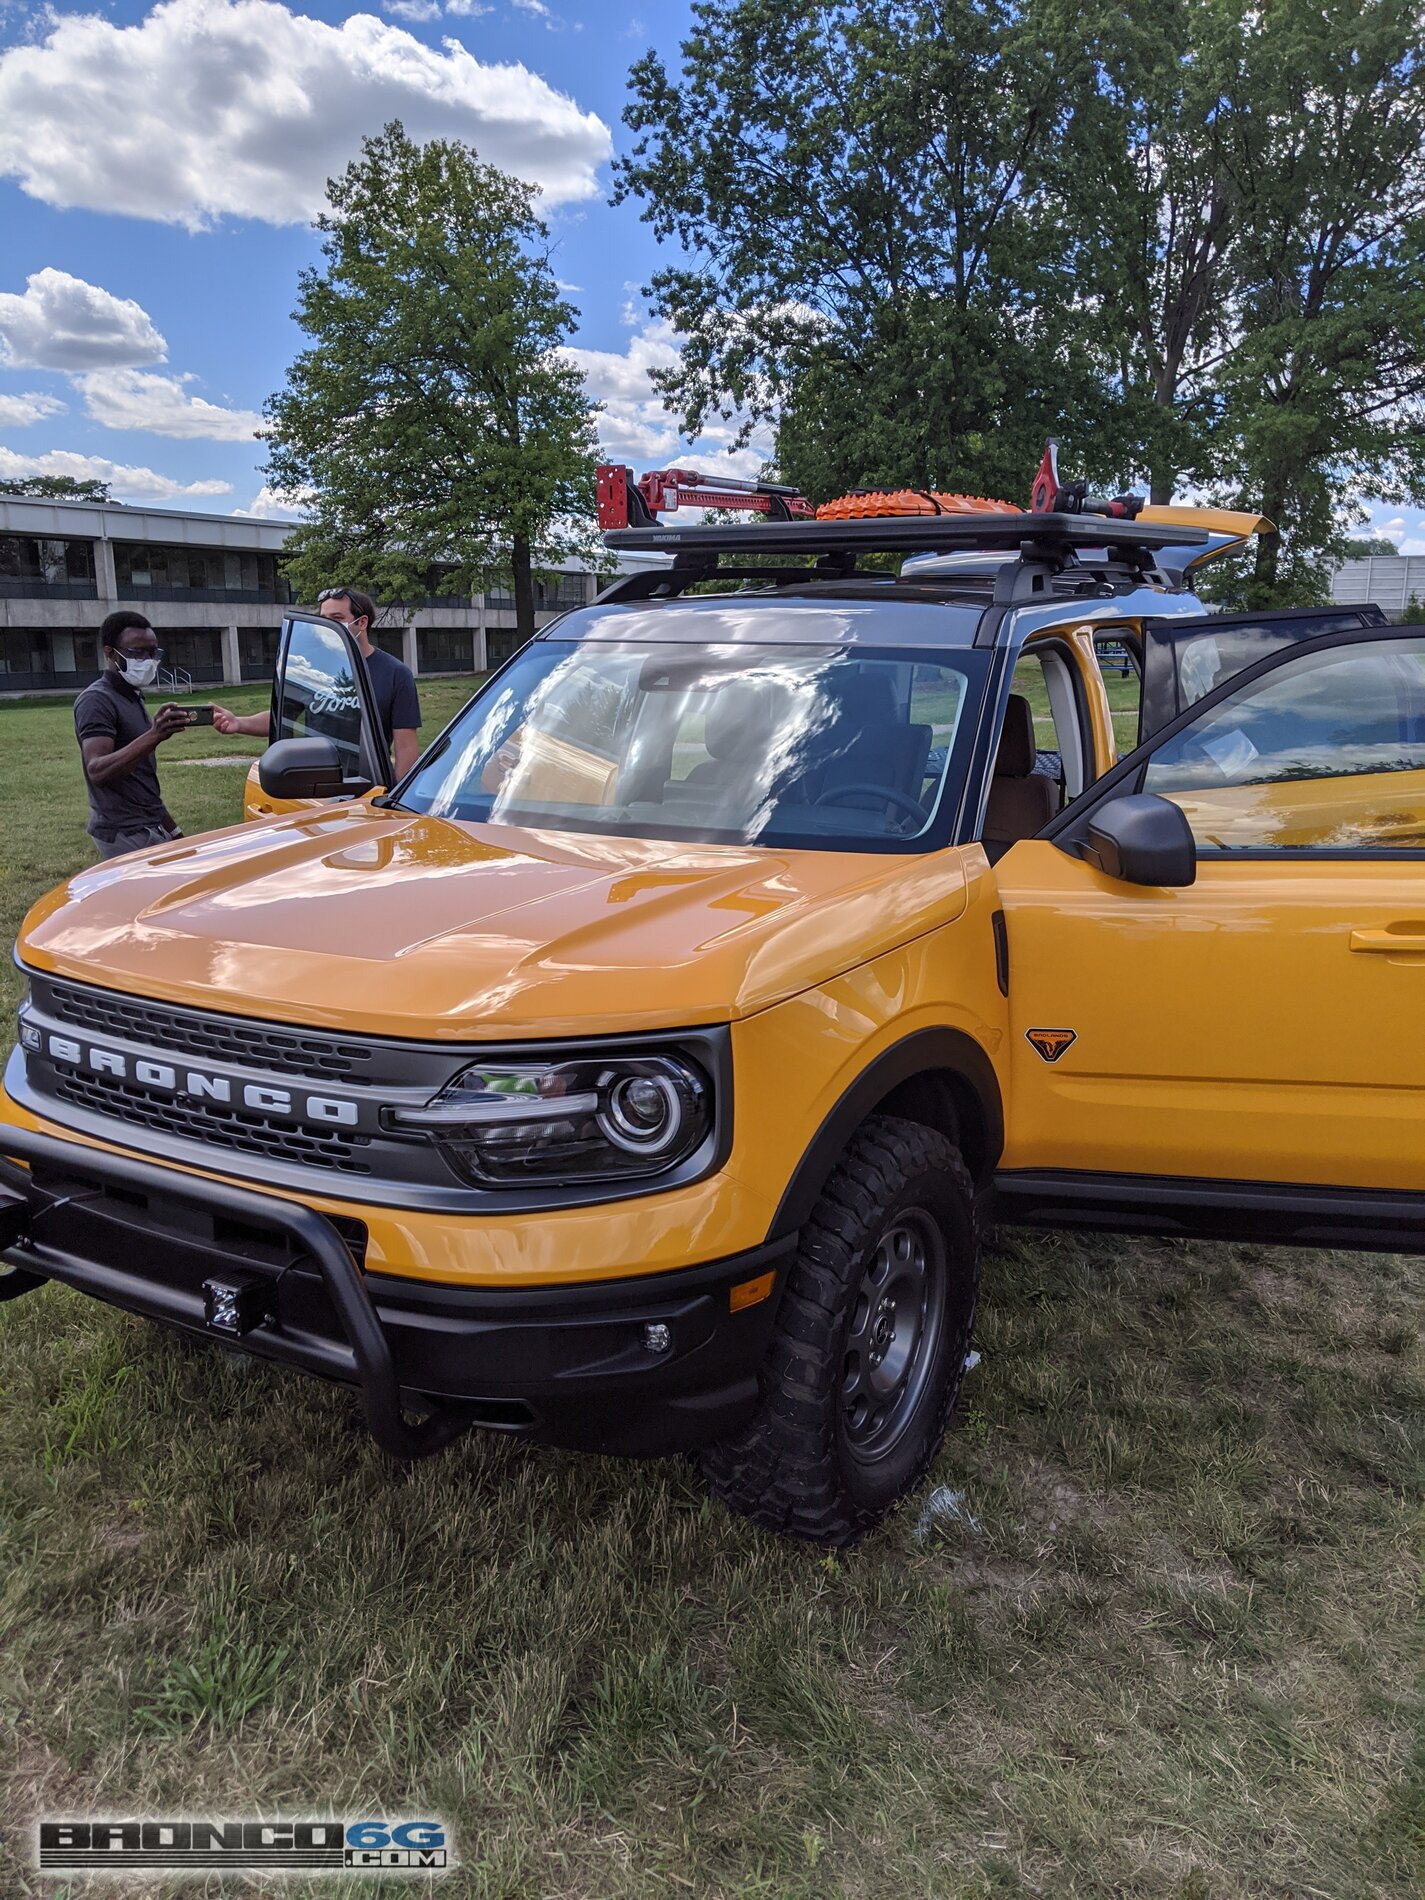 2021 Ford Bronco Employee Roundup Event 2.jpg